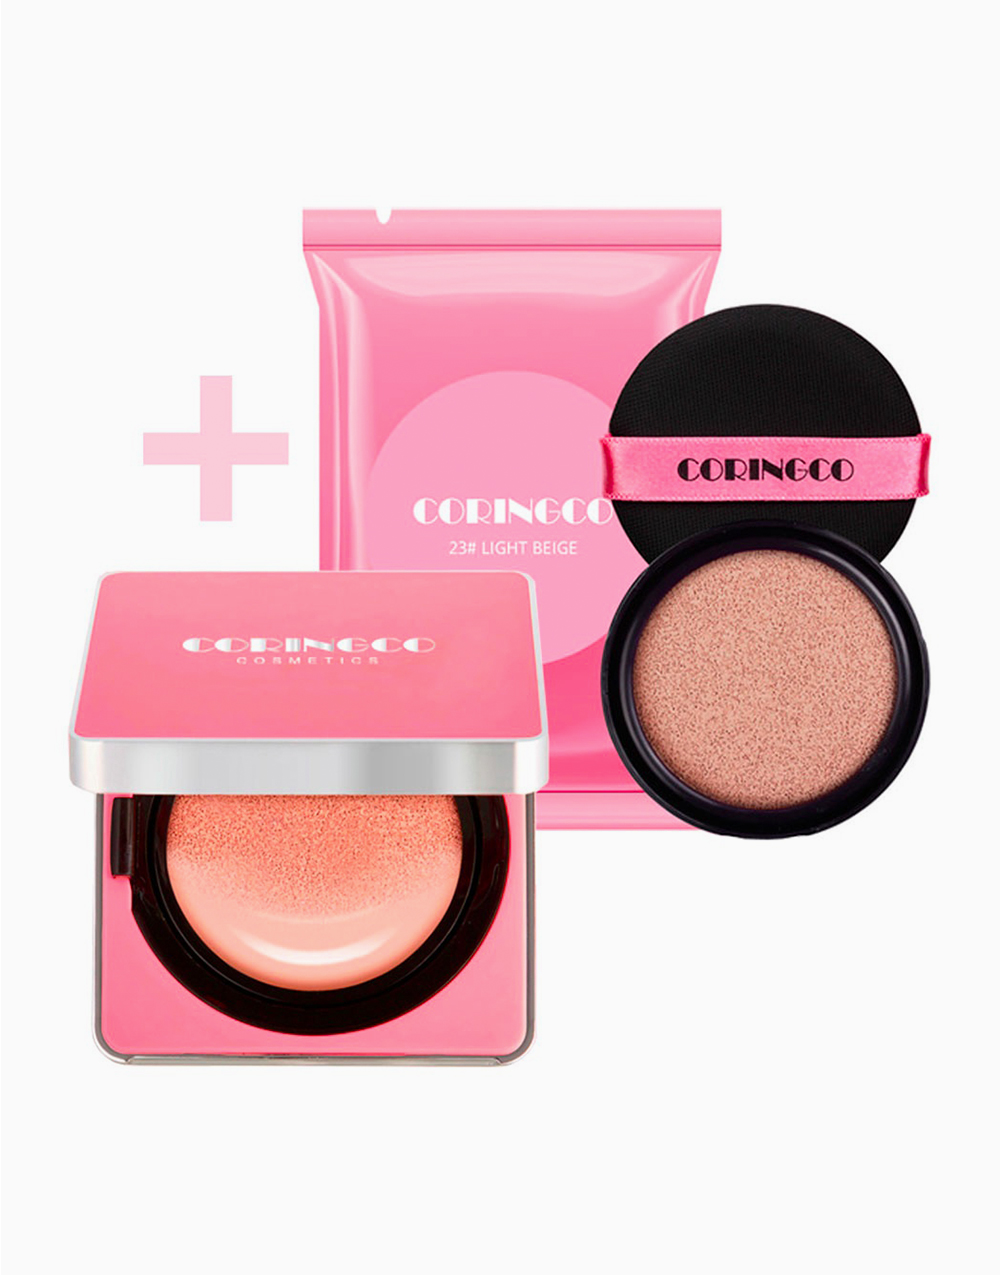 Cherry Blossom Water BB Cushion with Refill by Coringco | #23 Light Beige